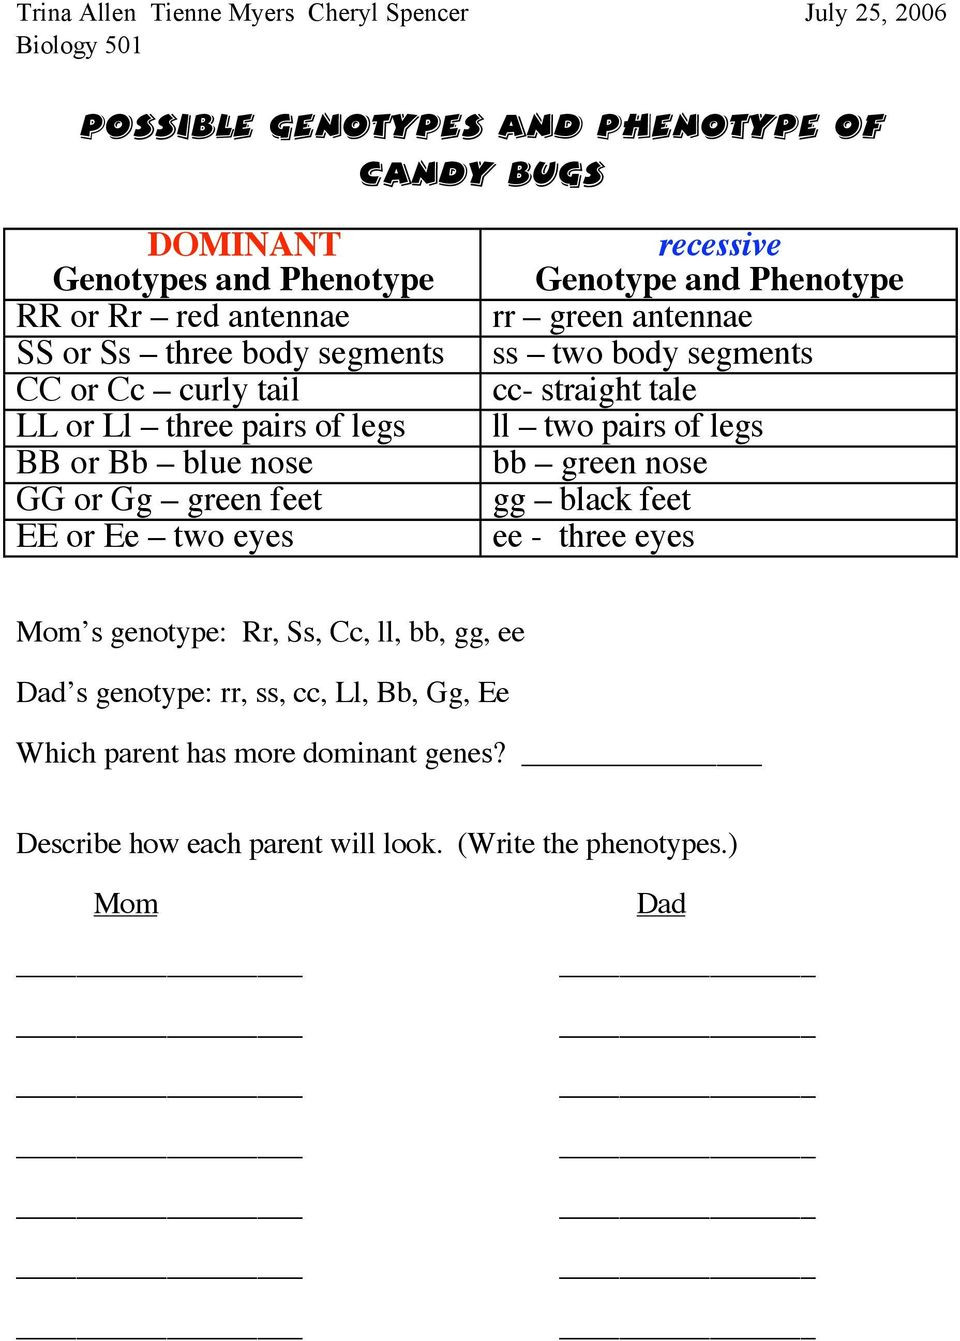 Genotypes and Phenotypes Worksheet Answers